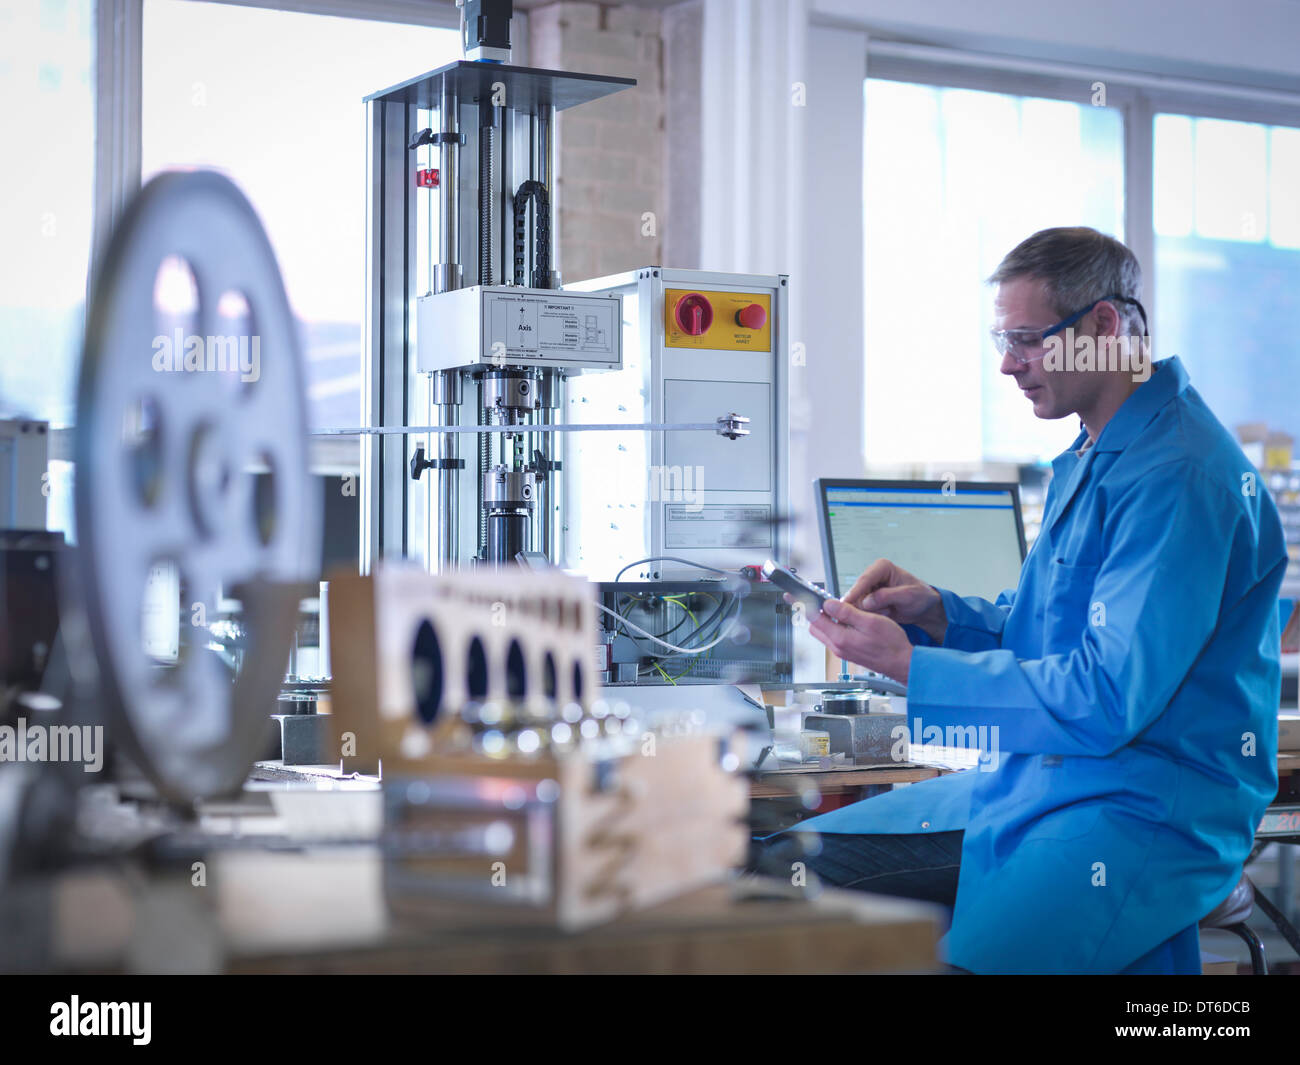 Worker in protective eyewear using spring testing equipment for automotive use - Stock Image